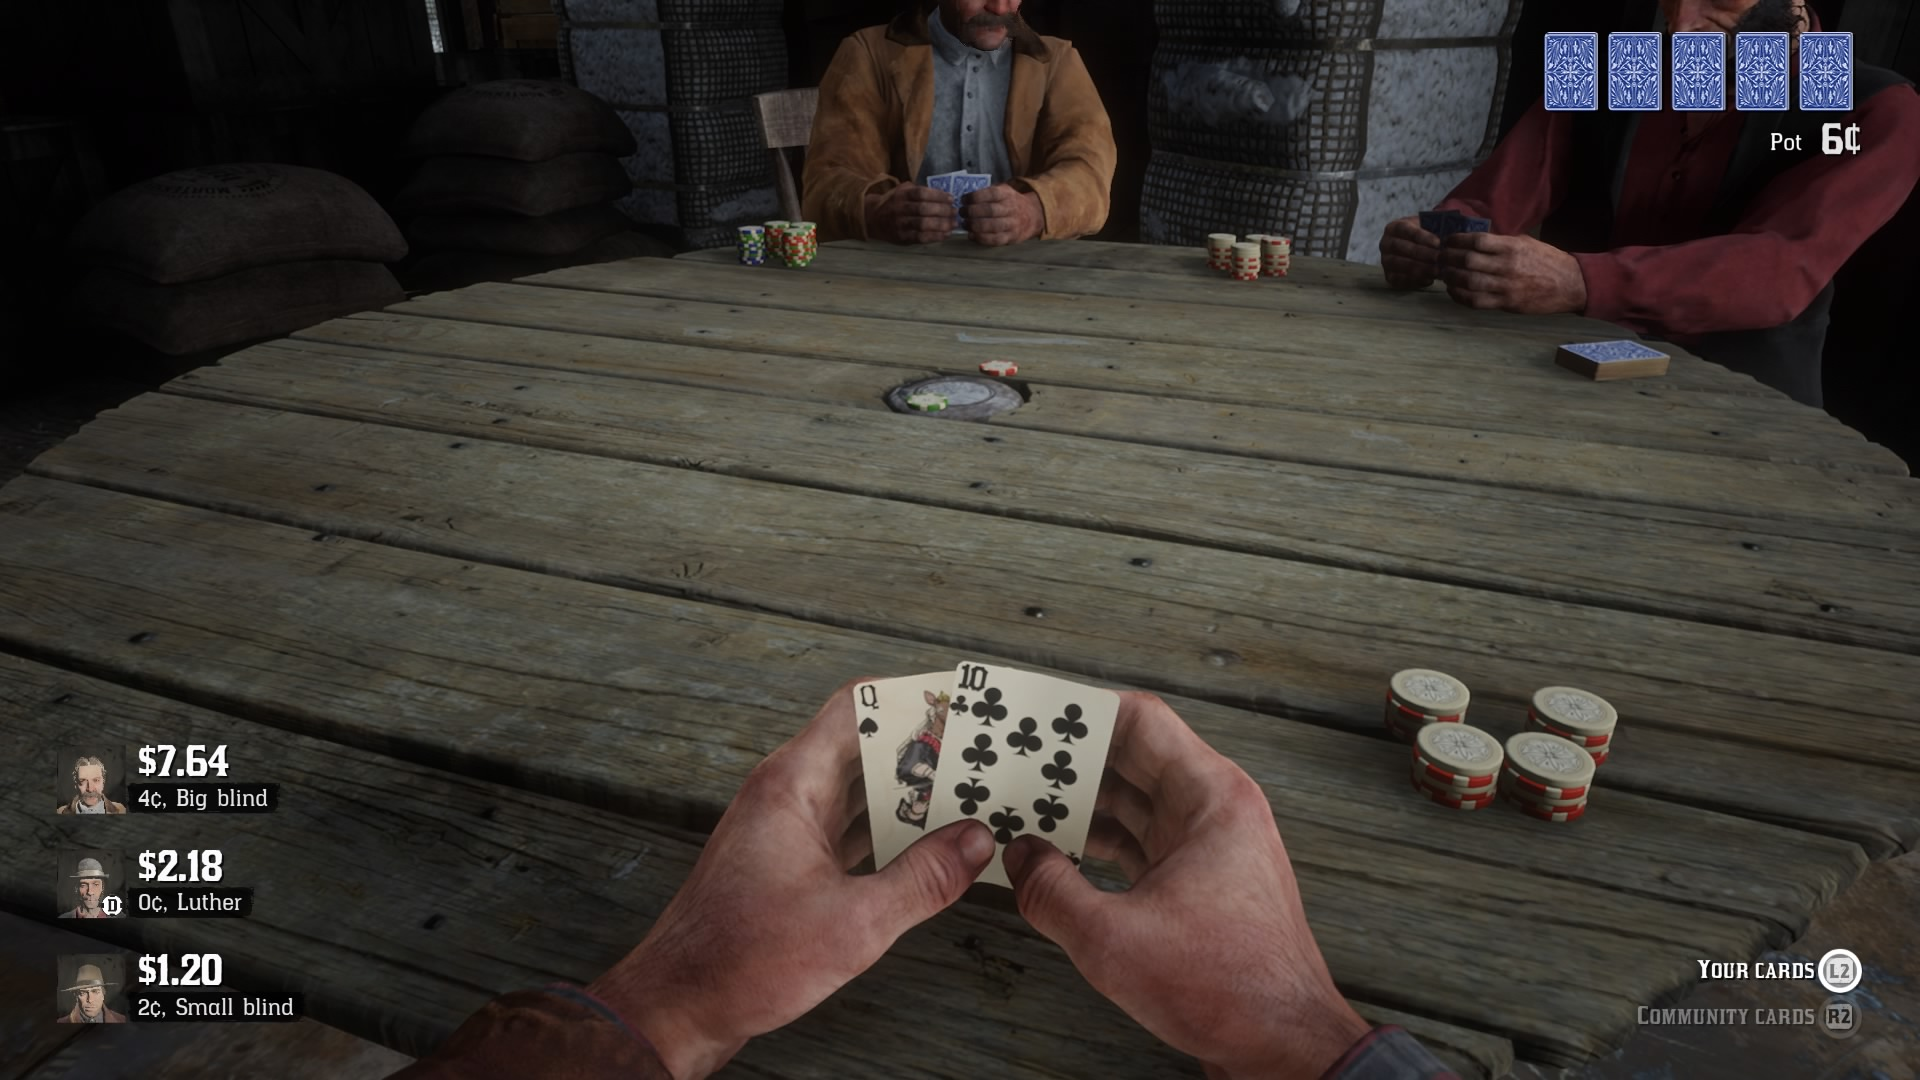 'Red Dead Redemption 2' Missing Characters Bug Fix In the Works